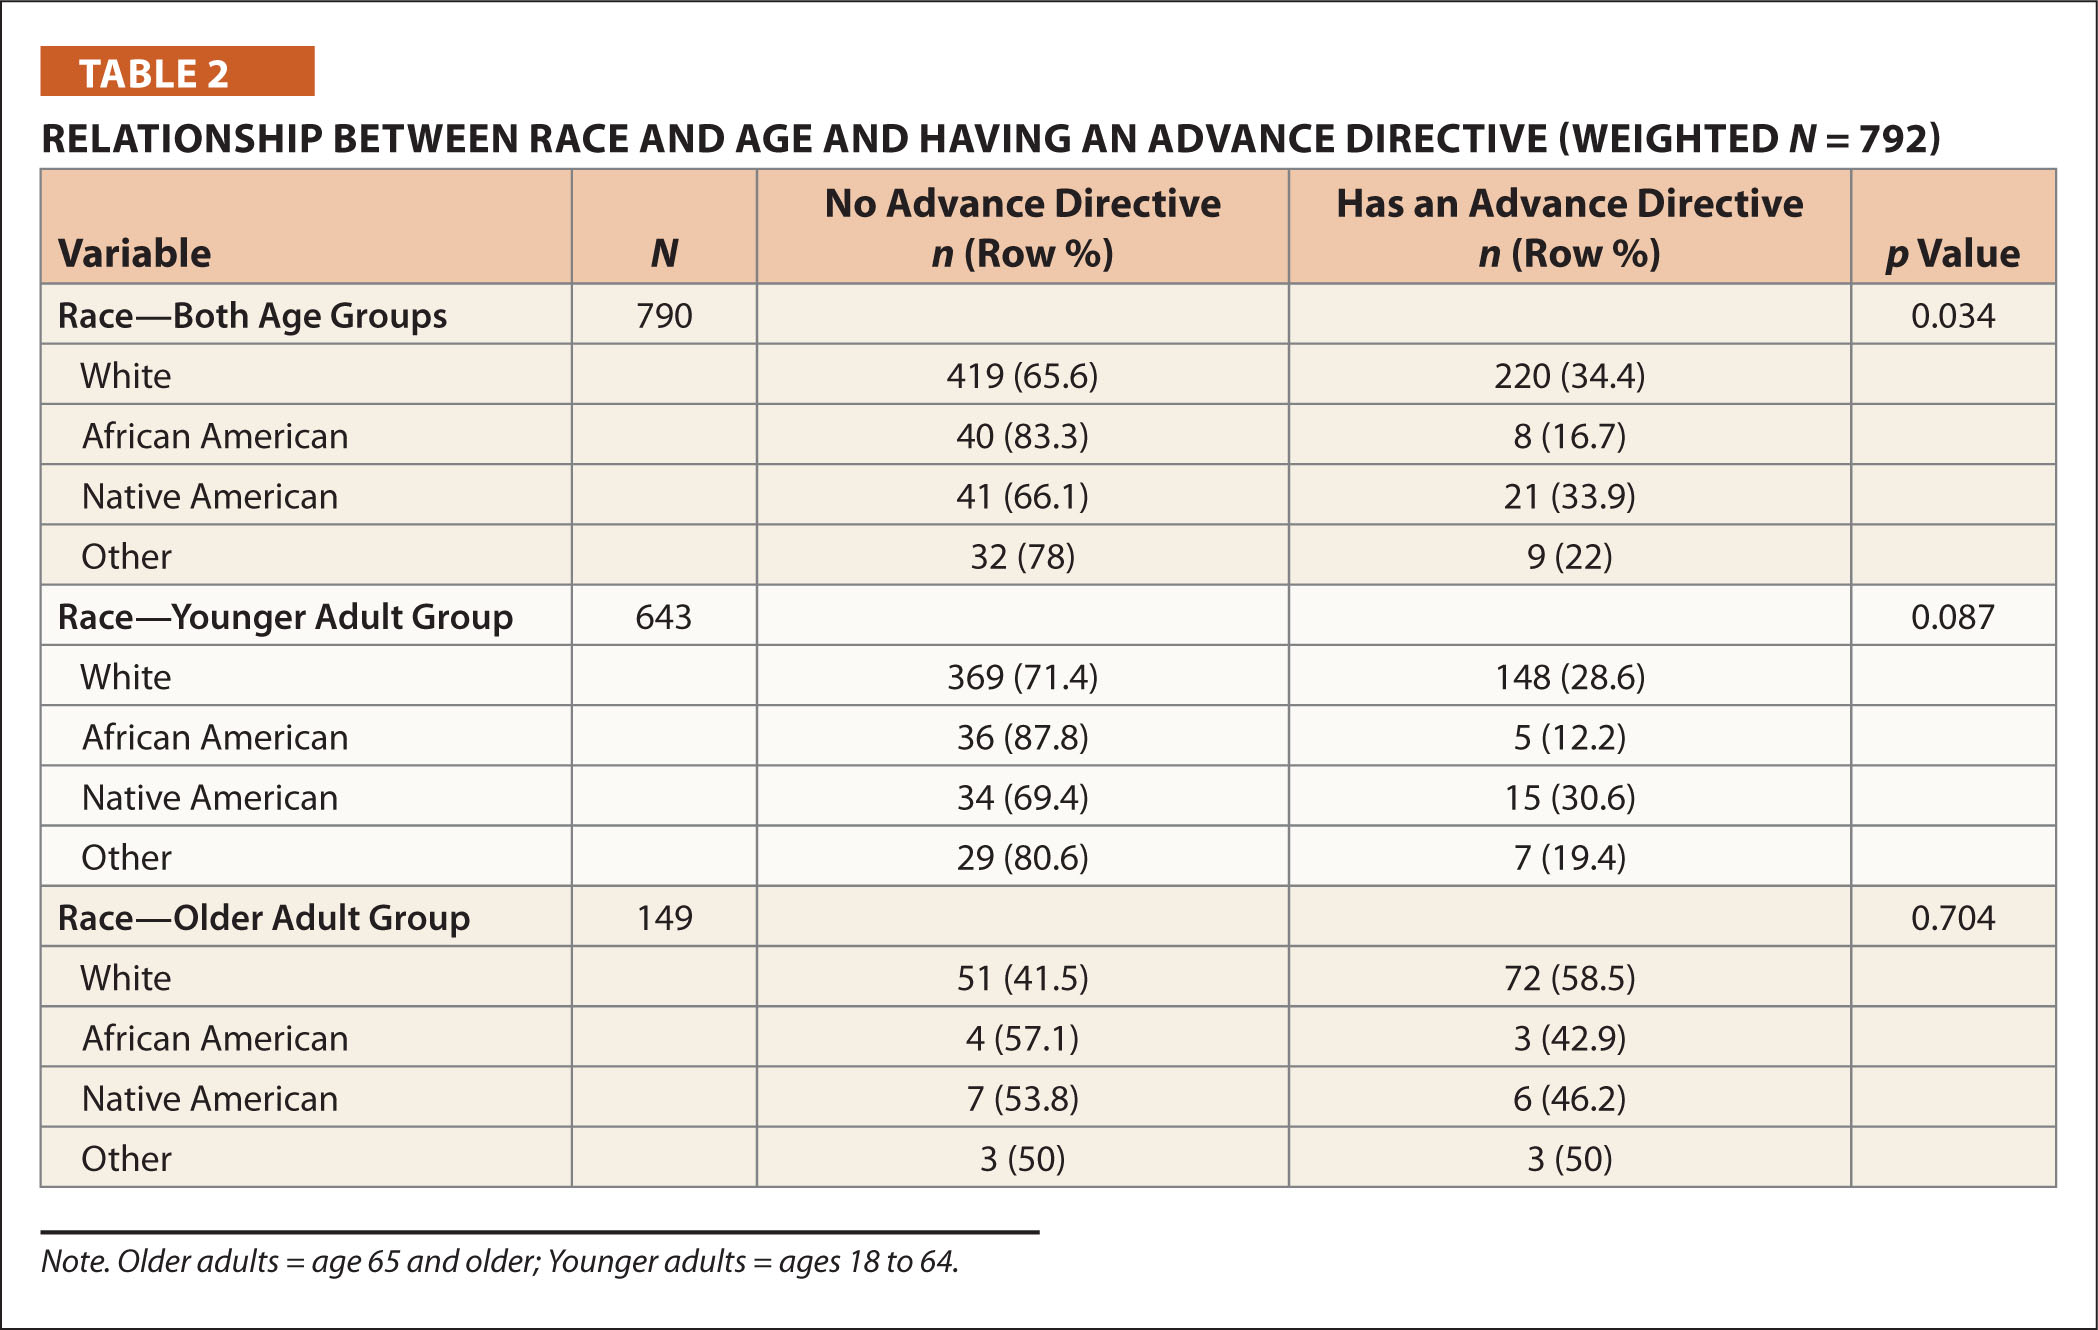 Relationship Between Race and Age and Having an Advance Directive (Weighted N = 792)